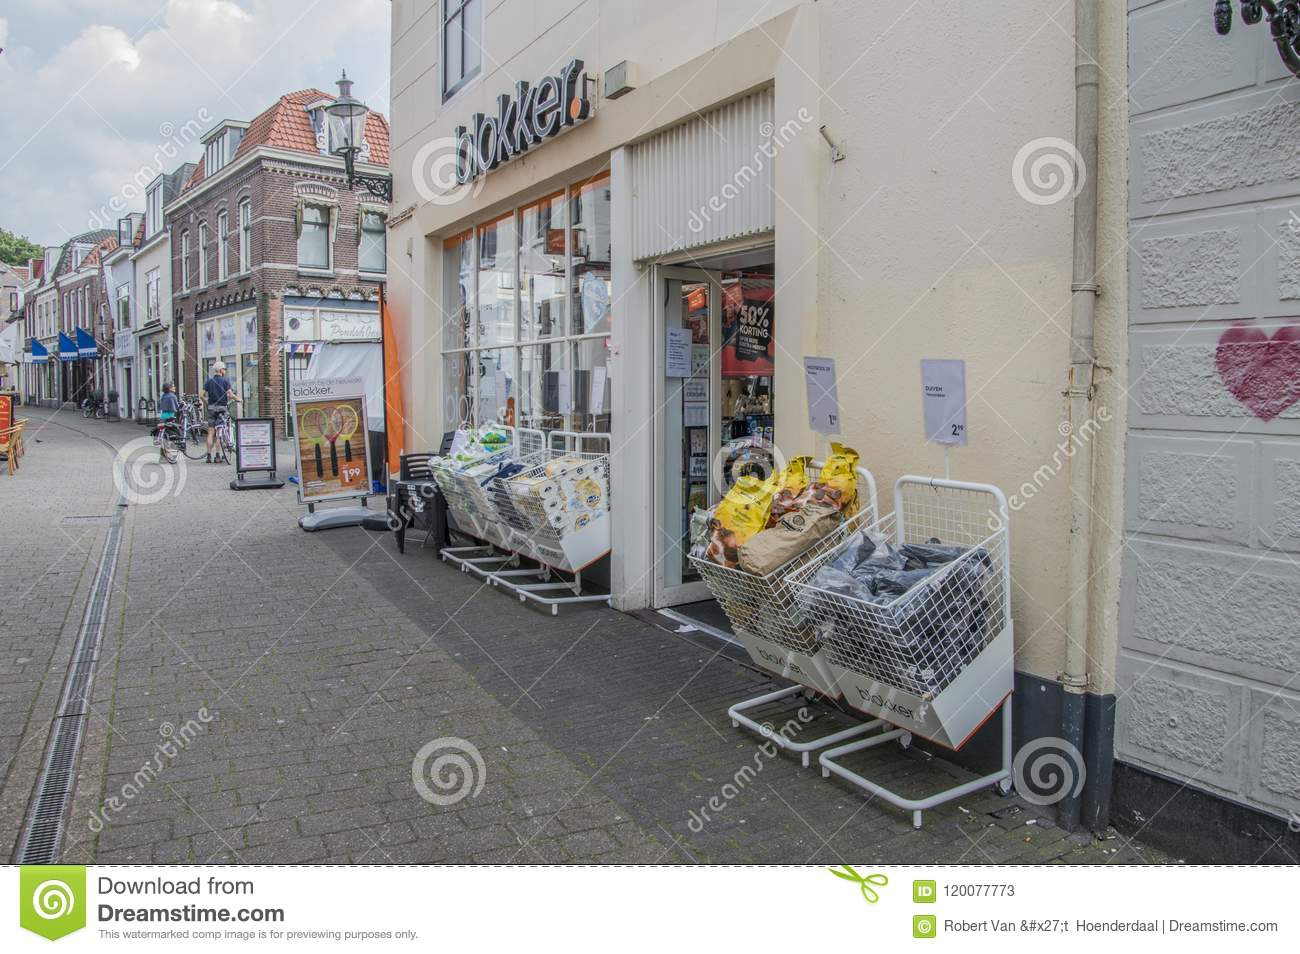 Blokker Sneek Openingstijden Blokker Store At Weesp The Netherlands Editorial Stock Photo